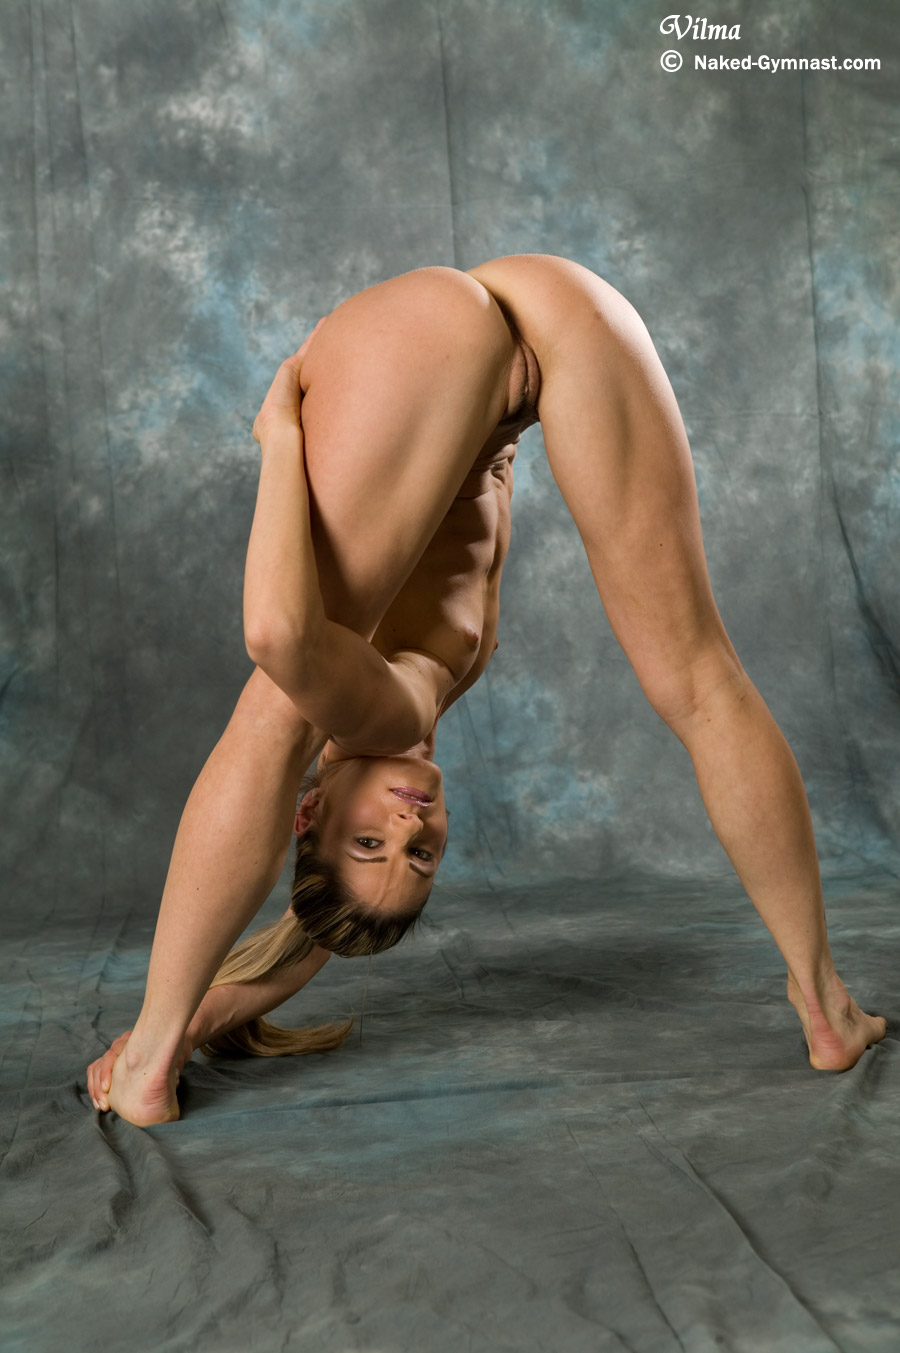 Nude gymnastics girls nudist